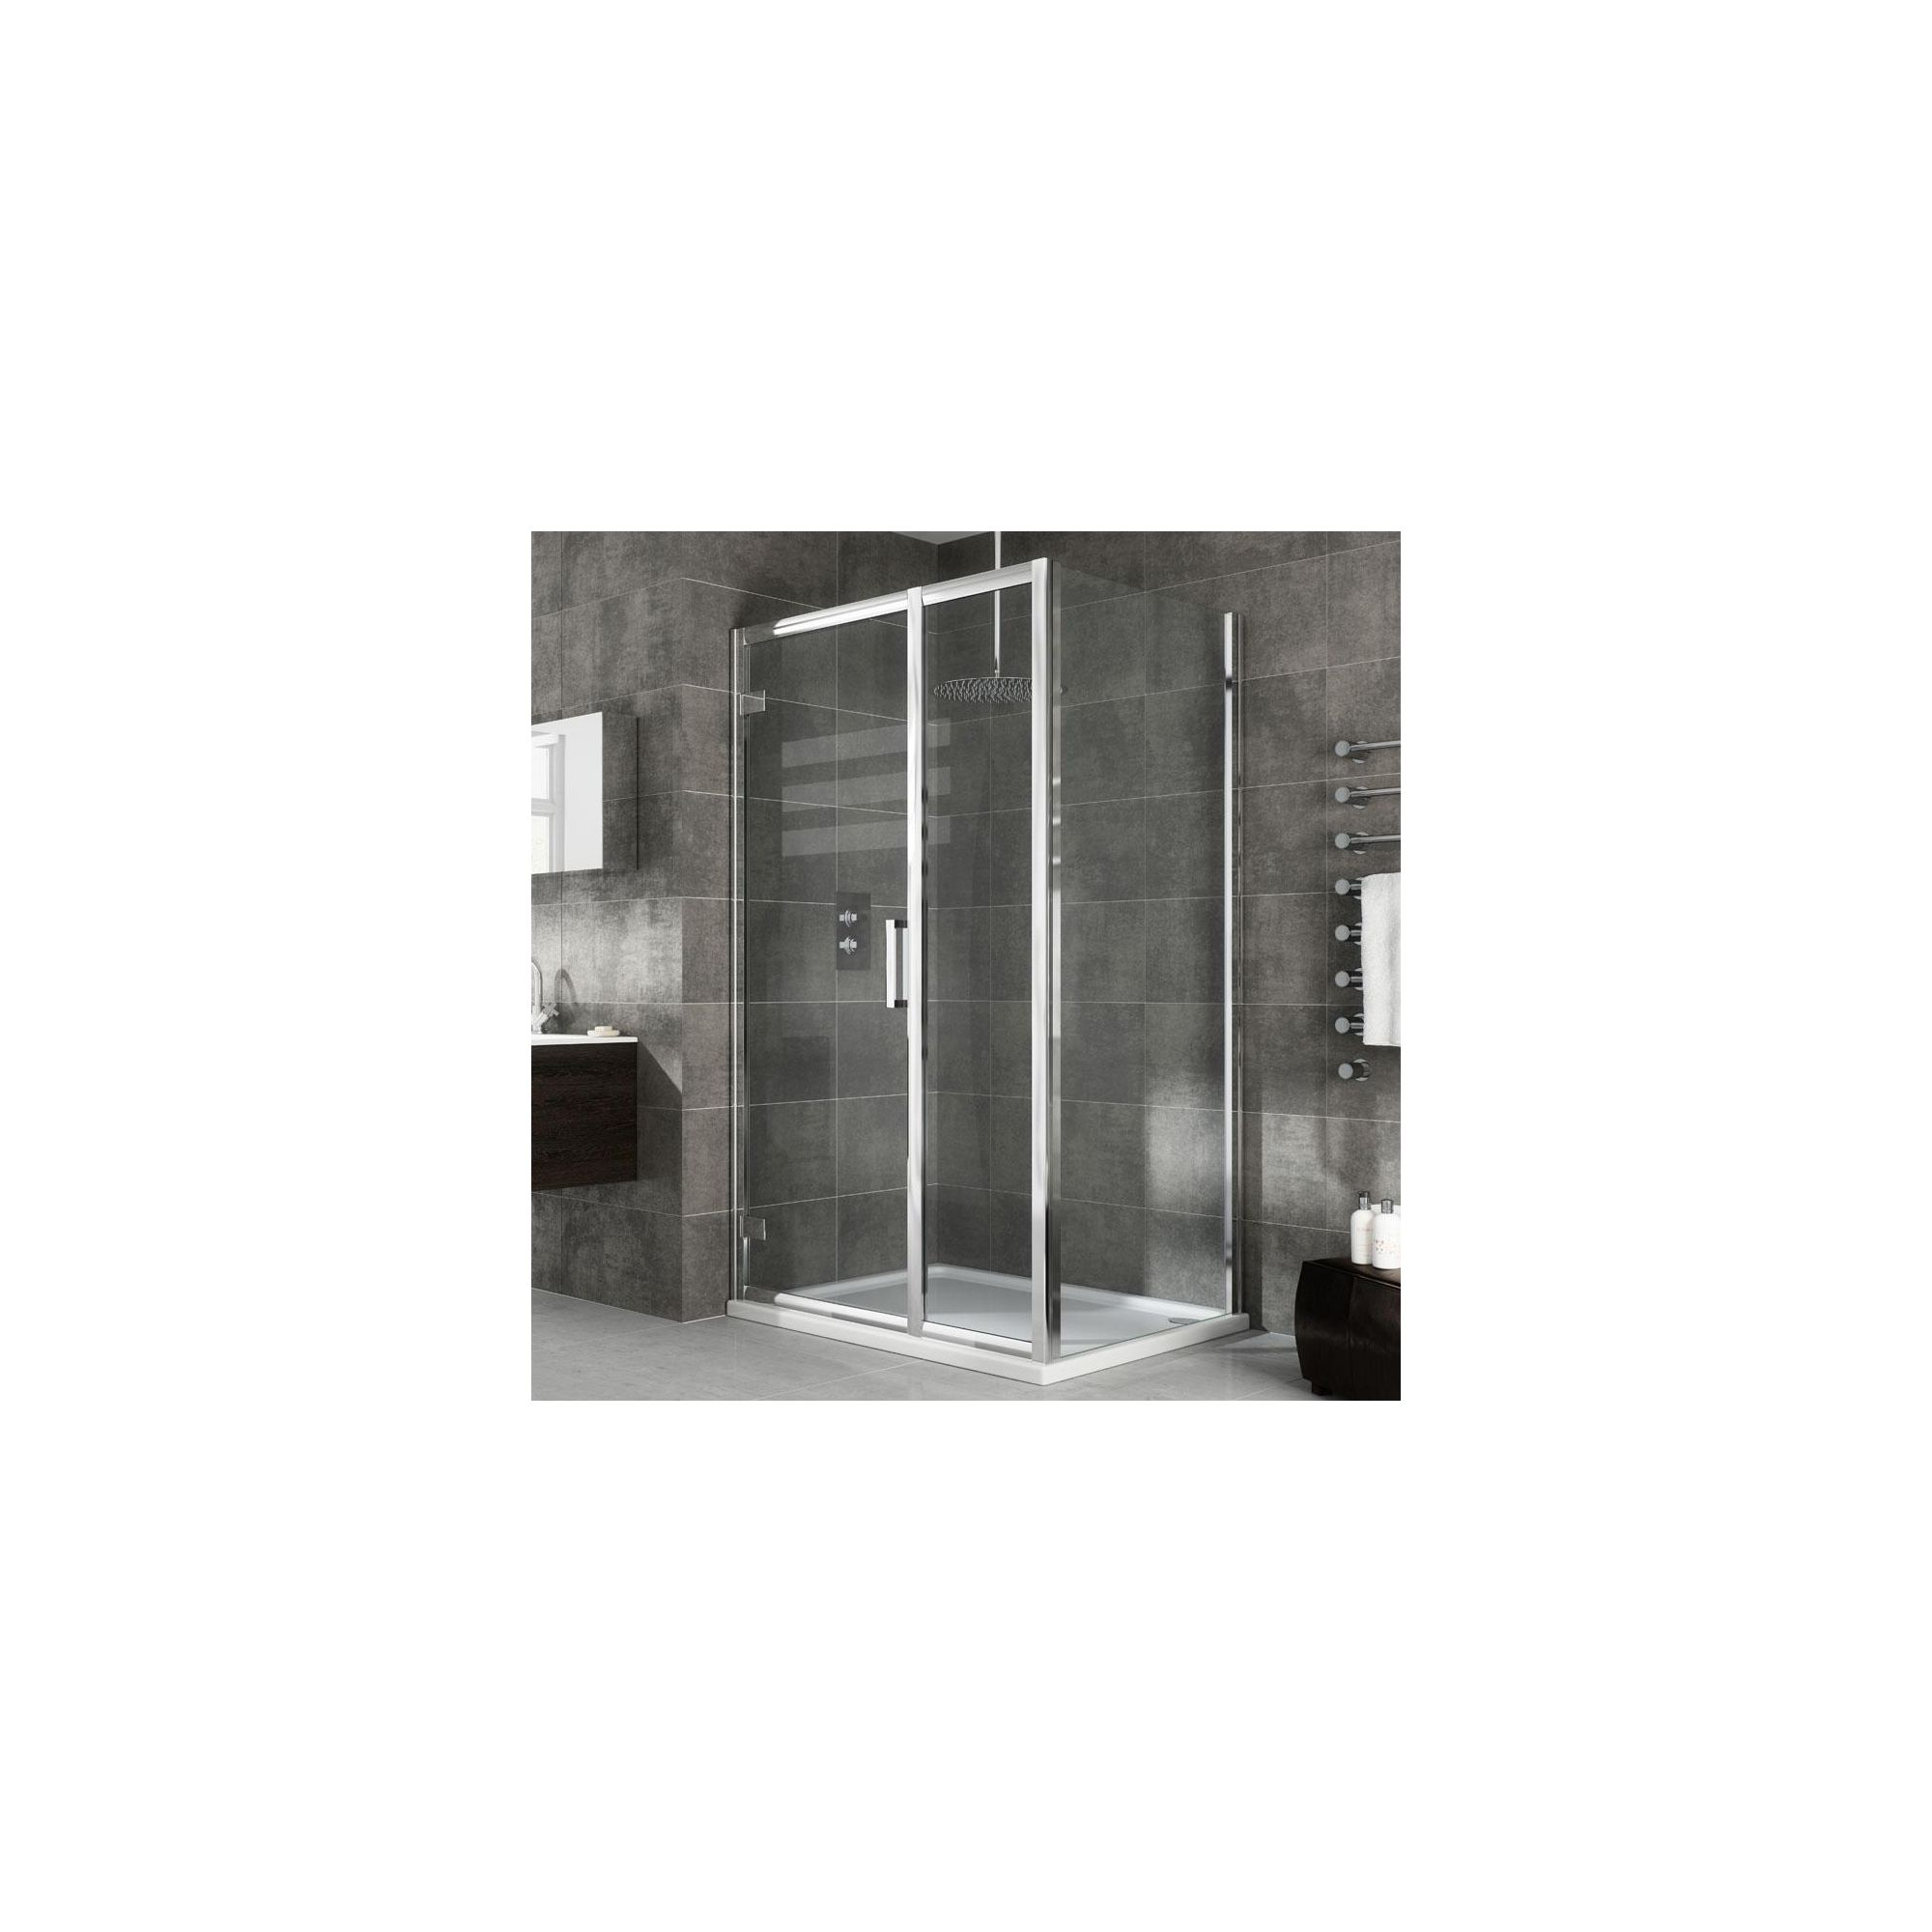 Elemis Eternity Inline Hinged Door Shower Enclosure, 1100mm x 900mm, 8mm Glass, Low Profile Tray at Tesco Direct